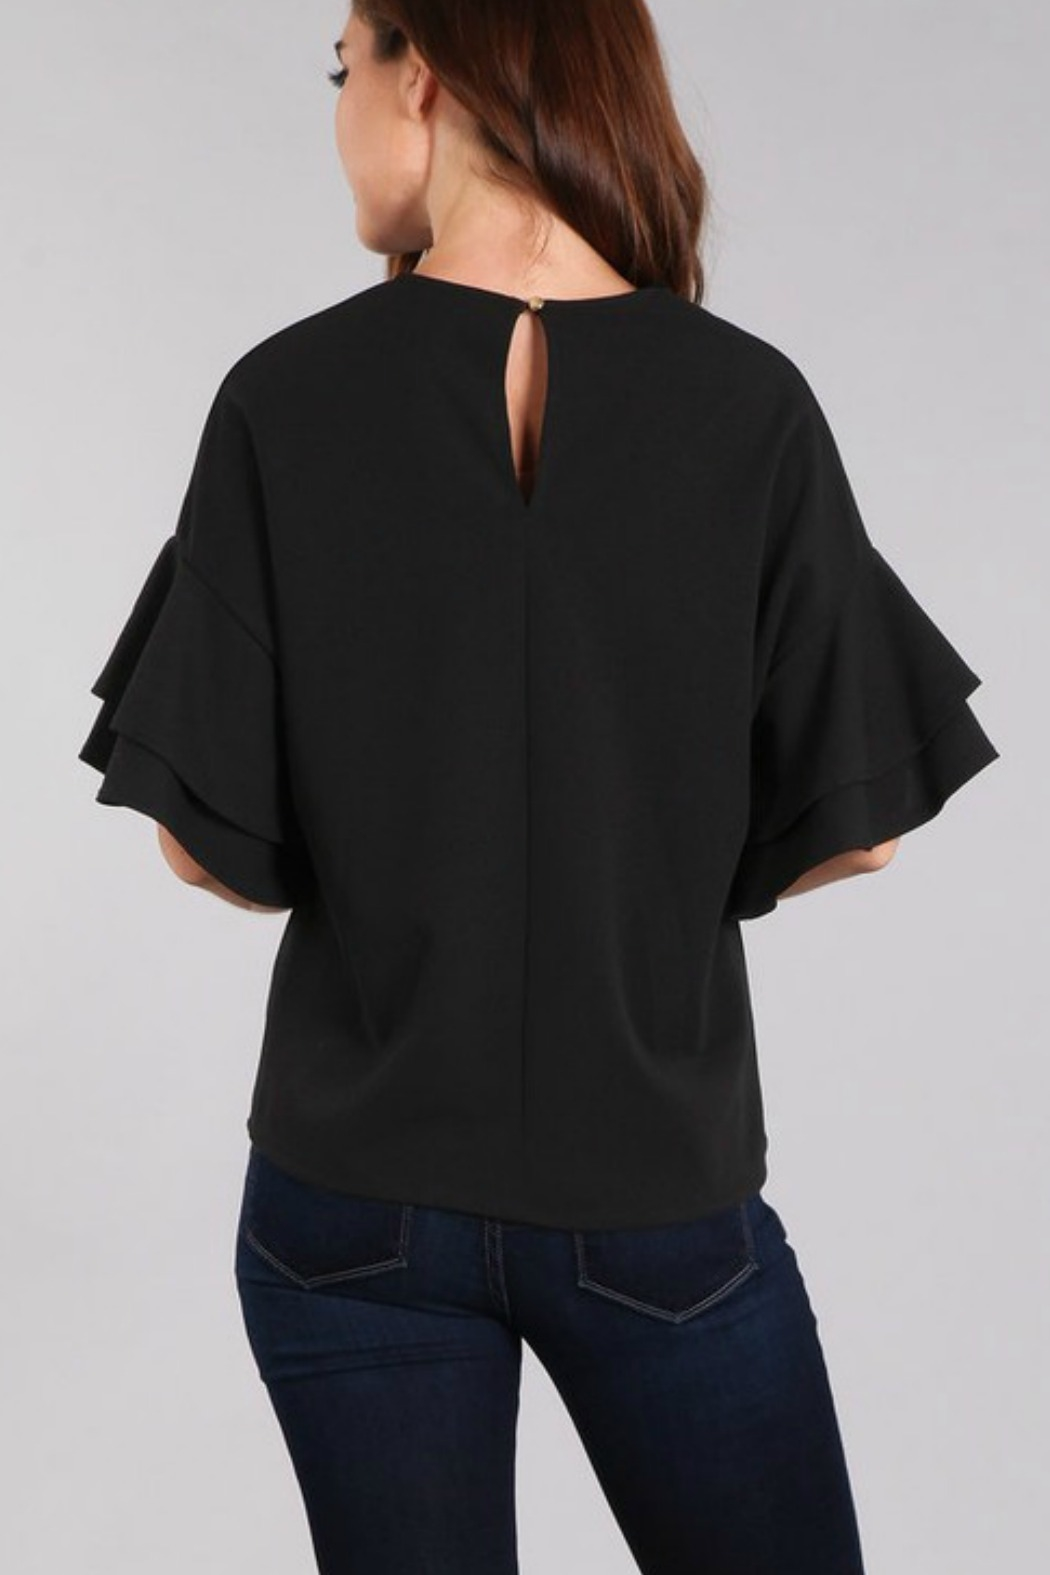 In Style Tiered Ruffle Sleeve Top - Back Cropped Image